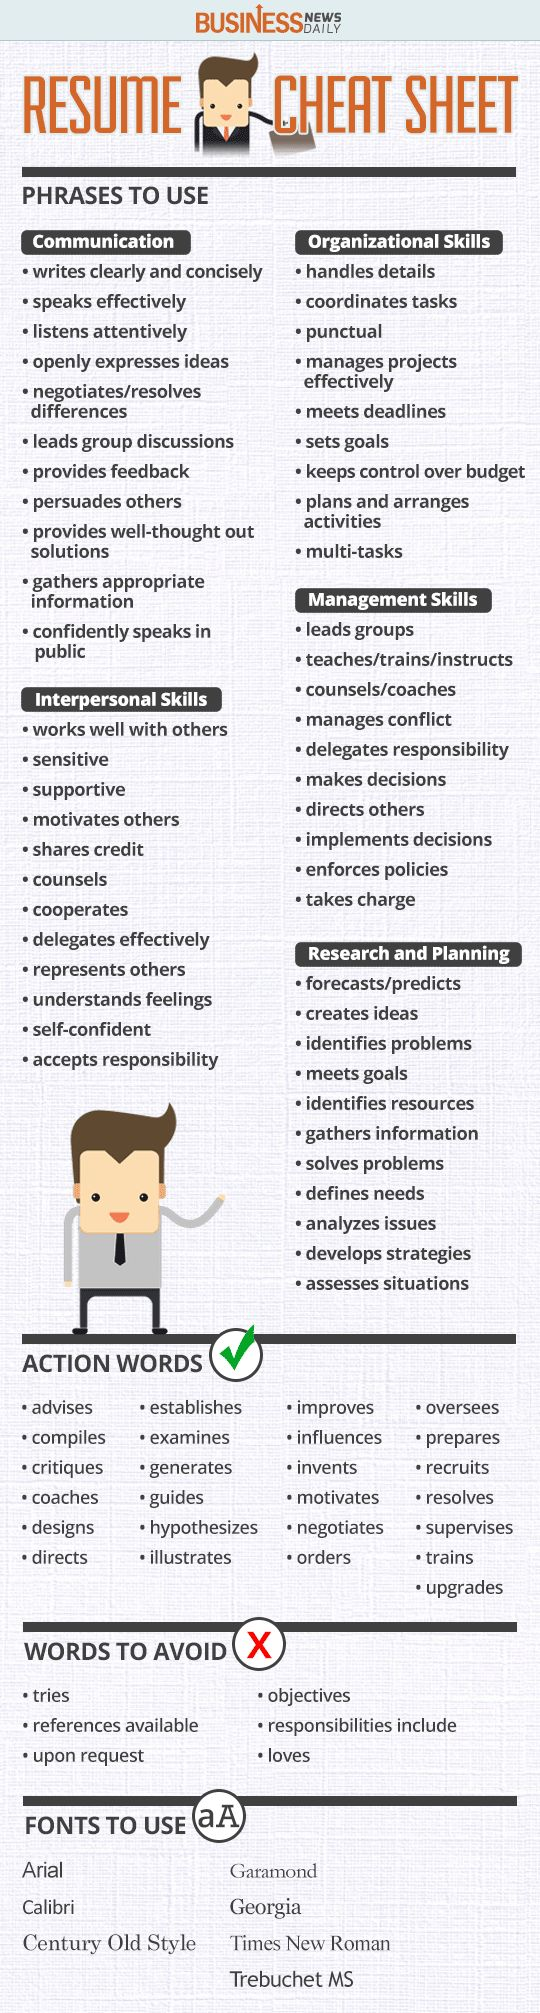 Picnictoimpeachus  Unique  Ideas About Resume On Pinterest  Cv Format Resume Cv And  With Inspiring Resume Cheat Sheet Infographic Andrews Almost Done With A Complete Unit On Employment Which With Amazing Reference Template For Resume Also Resume  Pages In Addition Warehouse Job Description For Resume And Customer Service Experience Resume As Well As Job Description For Resume Additionally Proper Spelling Of Resume From Pinterestcom With Picnictoimpeachus  Inspiring  Ideas About Resume On Pinterest  Cv Format Resume Cv And  With Amazing Resume Cheat Sheet Infographic Andrews Almost Done With A Complete Unit On Employment Which And Unique Reference Template For Resume Also Resume  Pages In Addition Warehouse Job Description For Resume From Pinterestcom